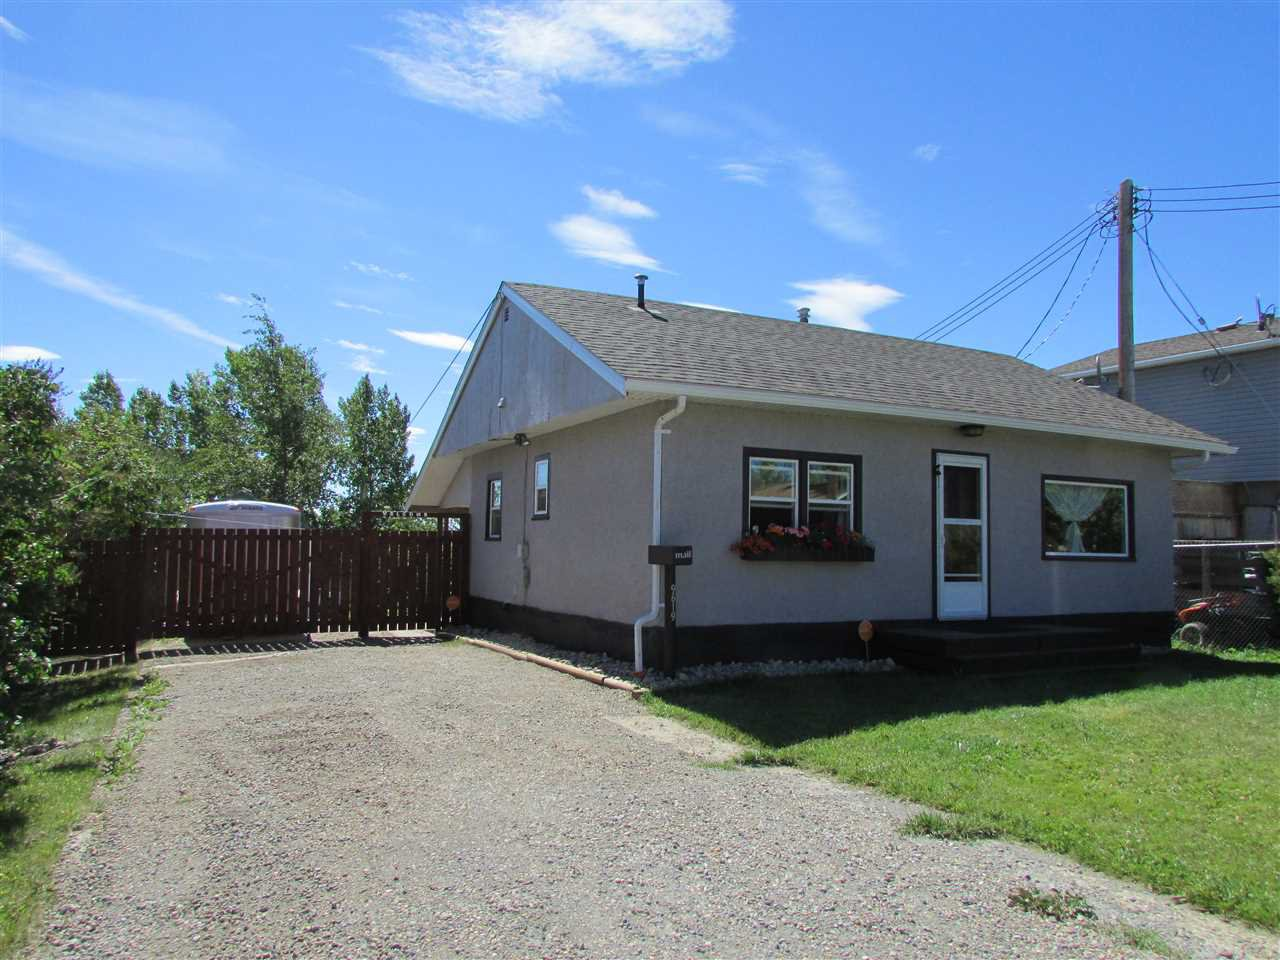 Main Photo: 9619 99 Avenue: Fort St. John - City SE House for sale (Fort St. John (Zone 60))  : MLS®# R2095506